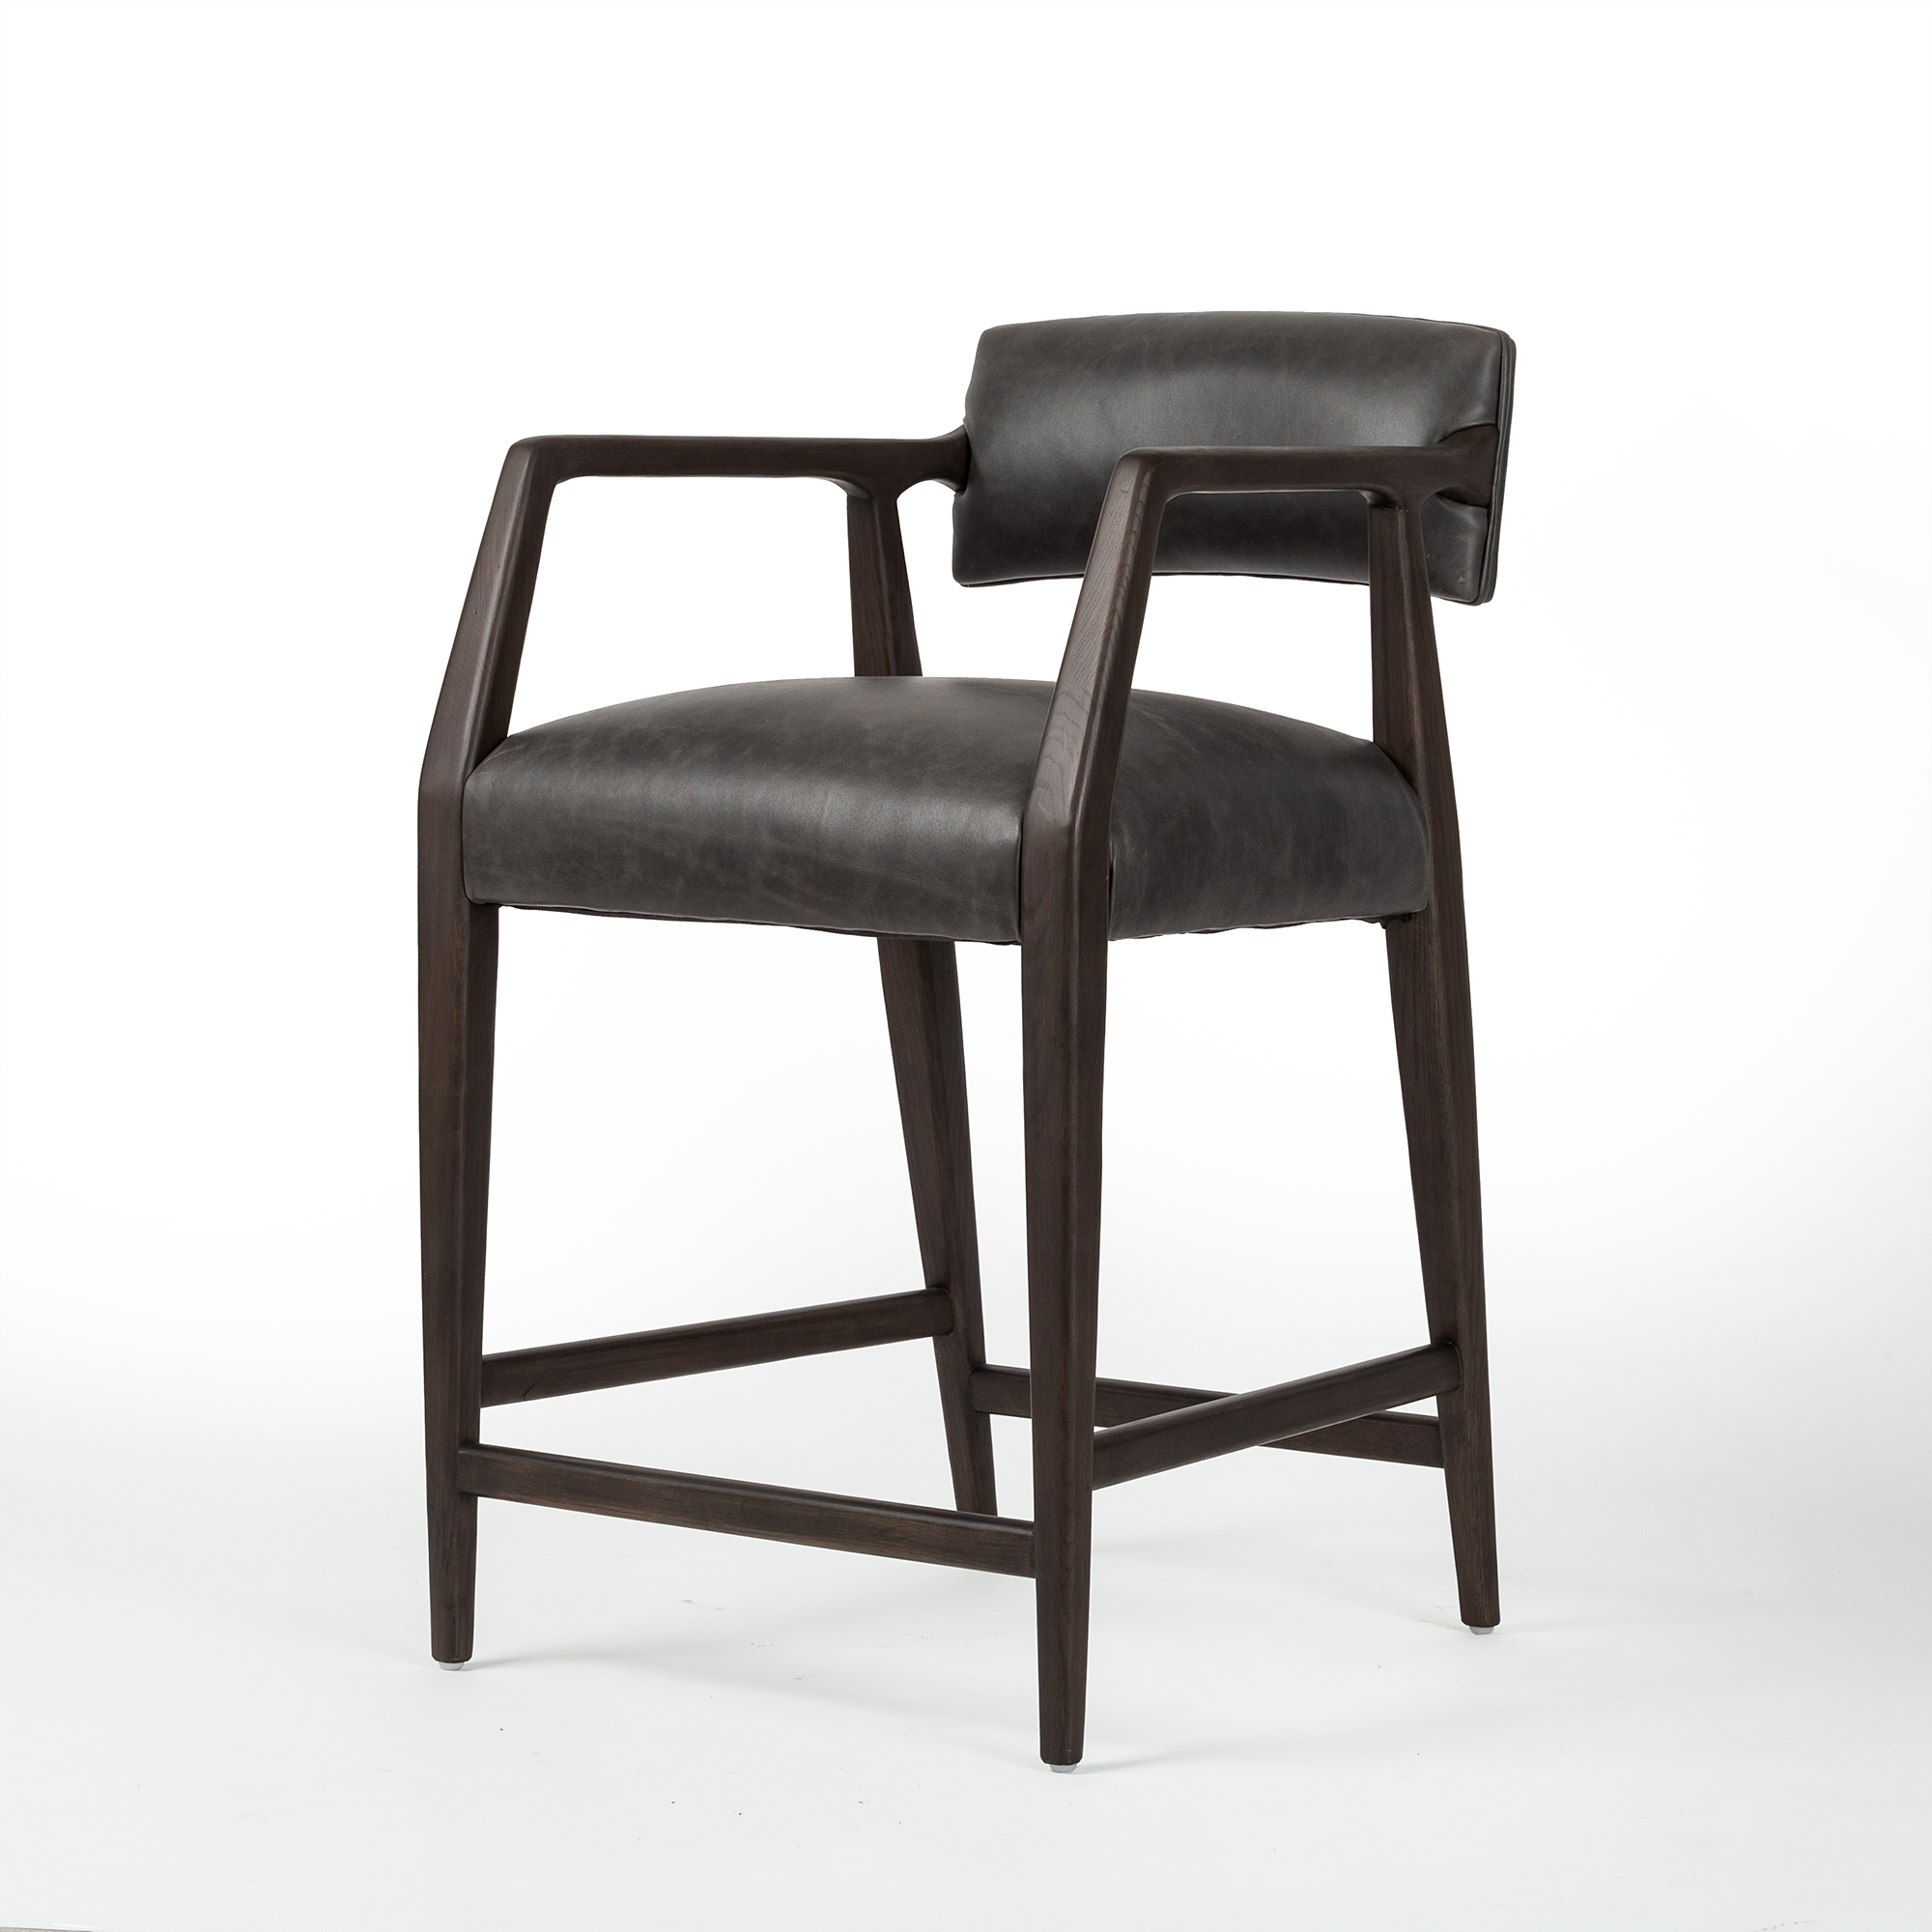 Prime Abbott Tyler Counter Stool In Chaps Ebony Caraccident5 Cool Chair Designs And Ideas Caraccident5Info